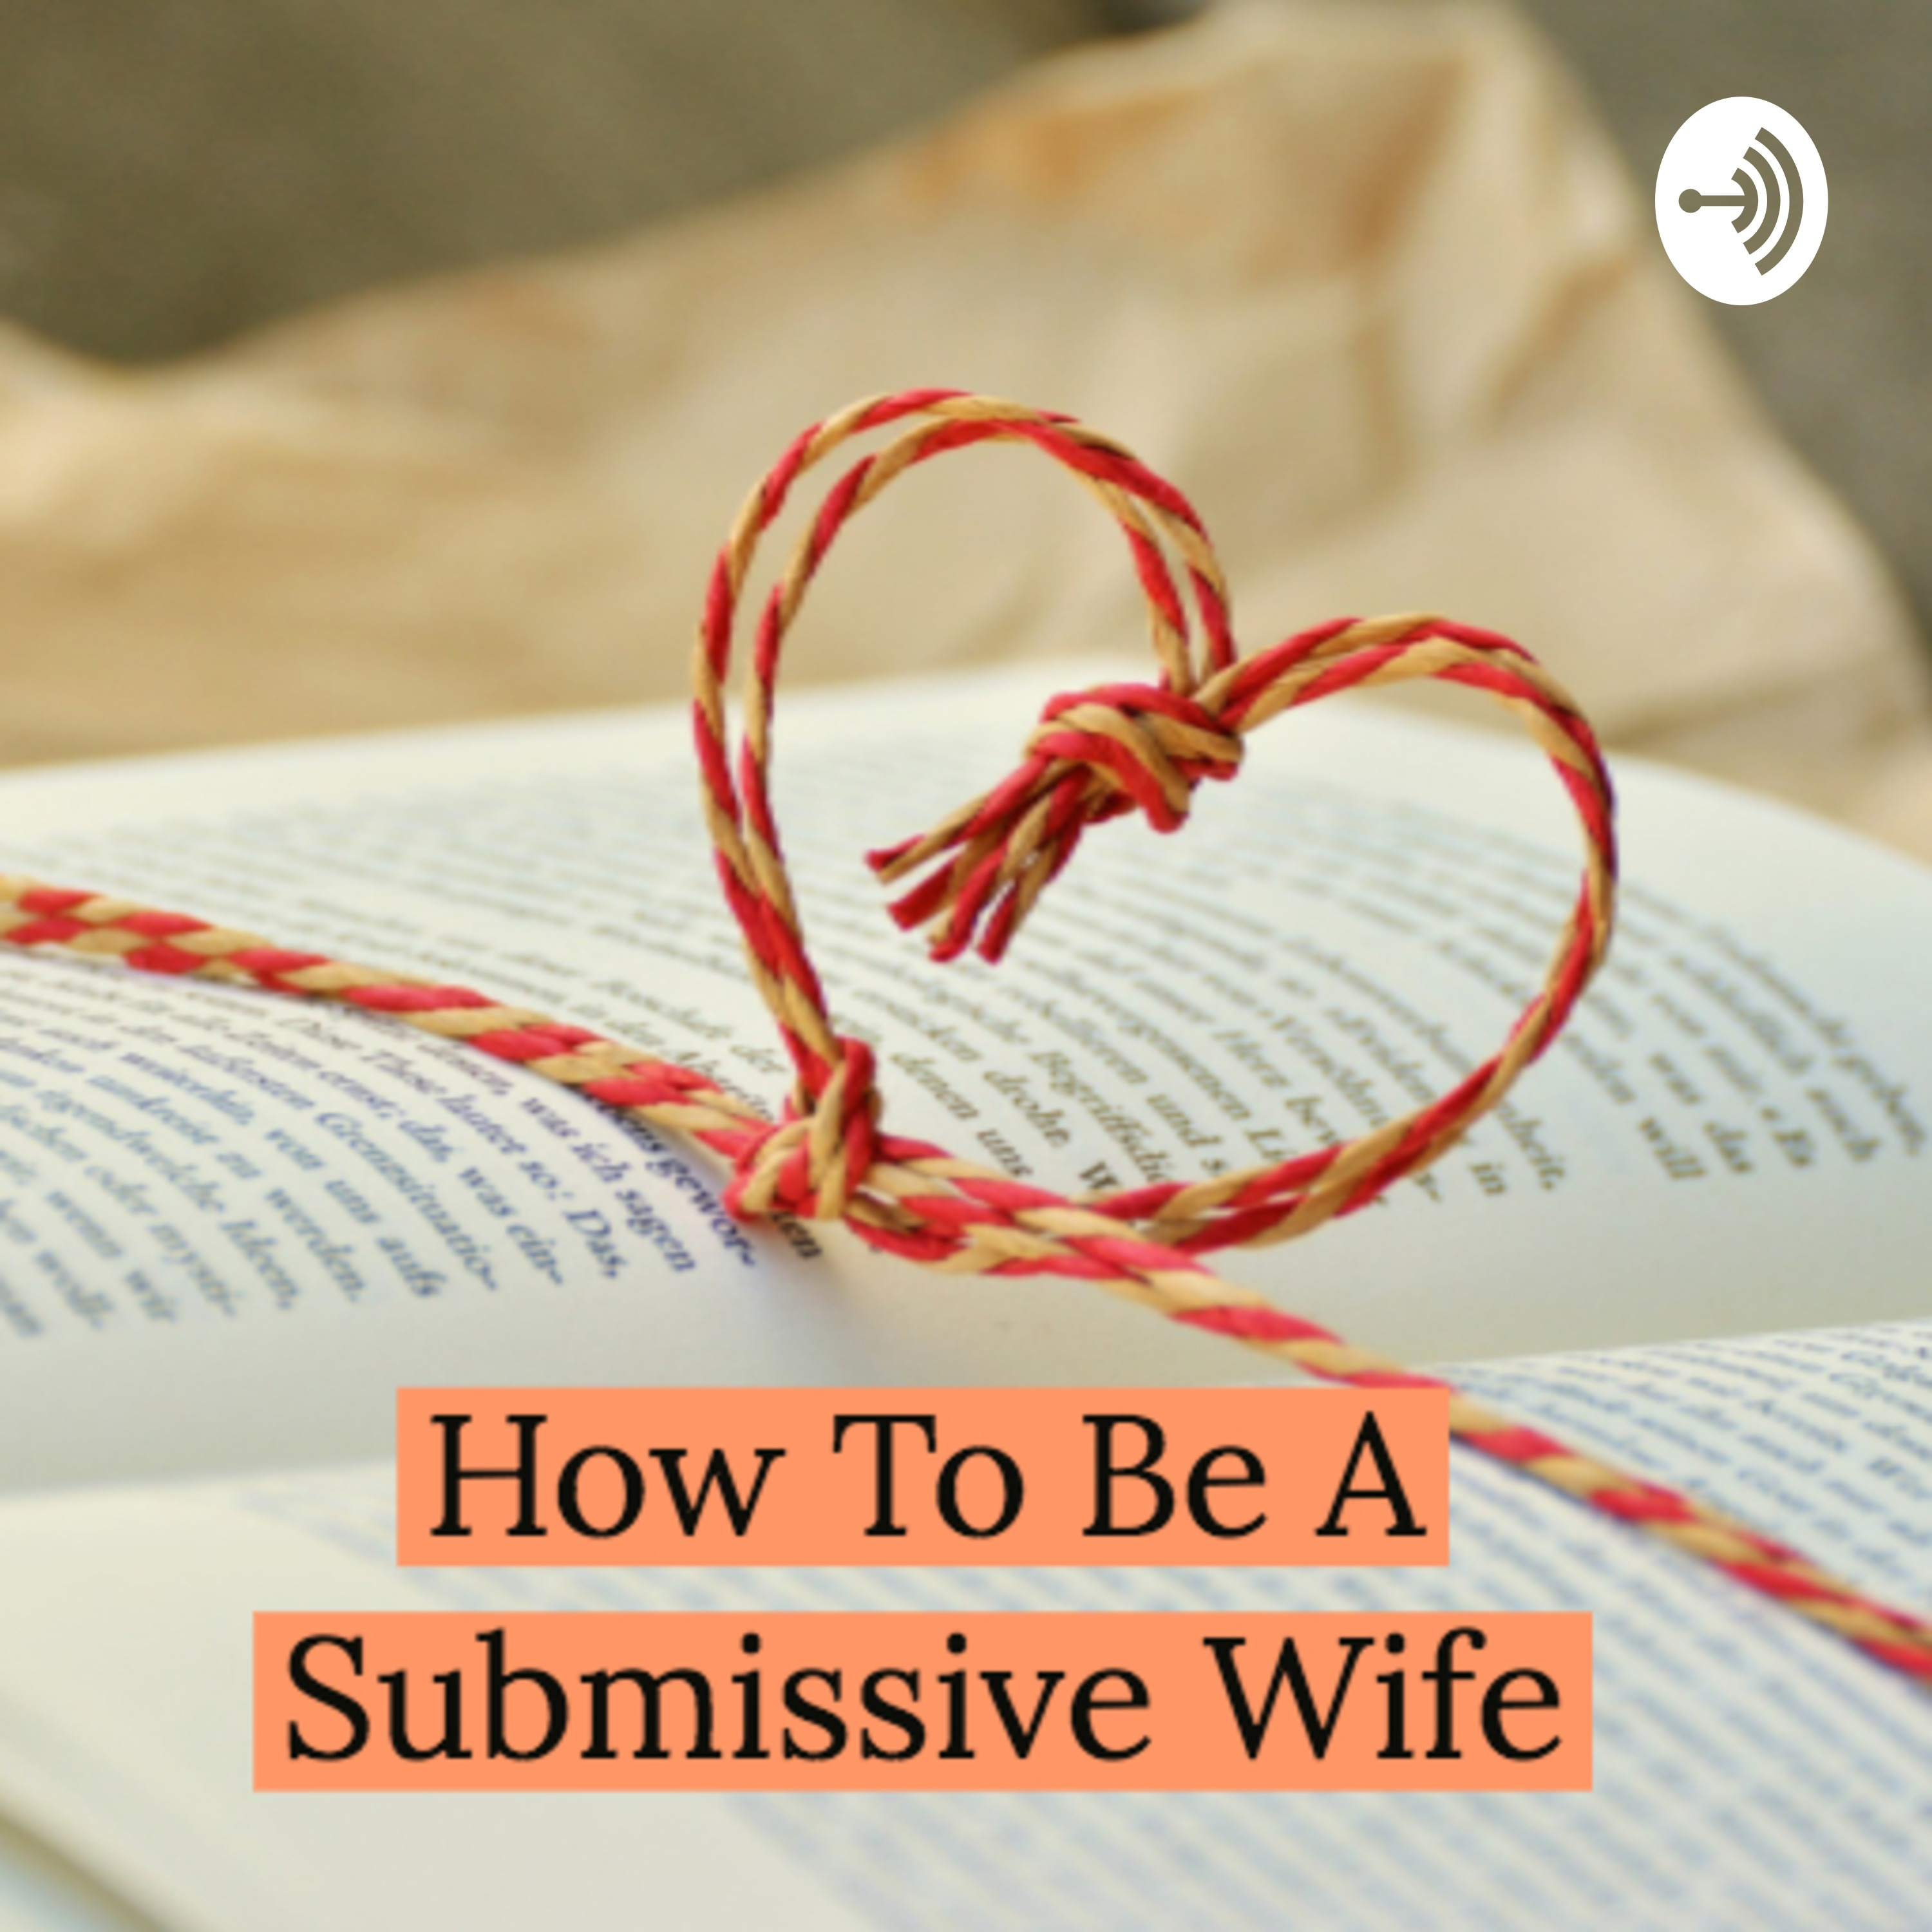 How To Be A Submissive Wife | Listen Free on Castbox